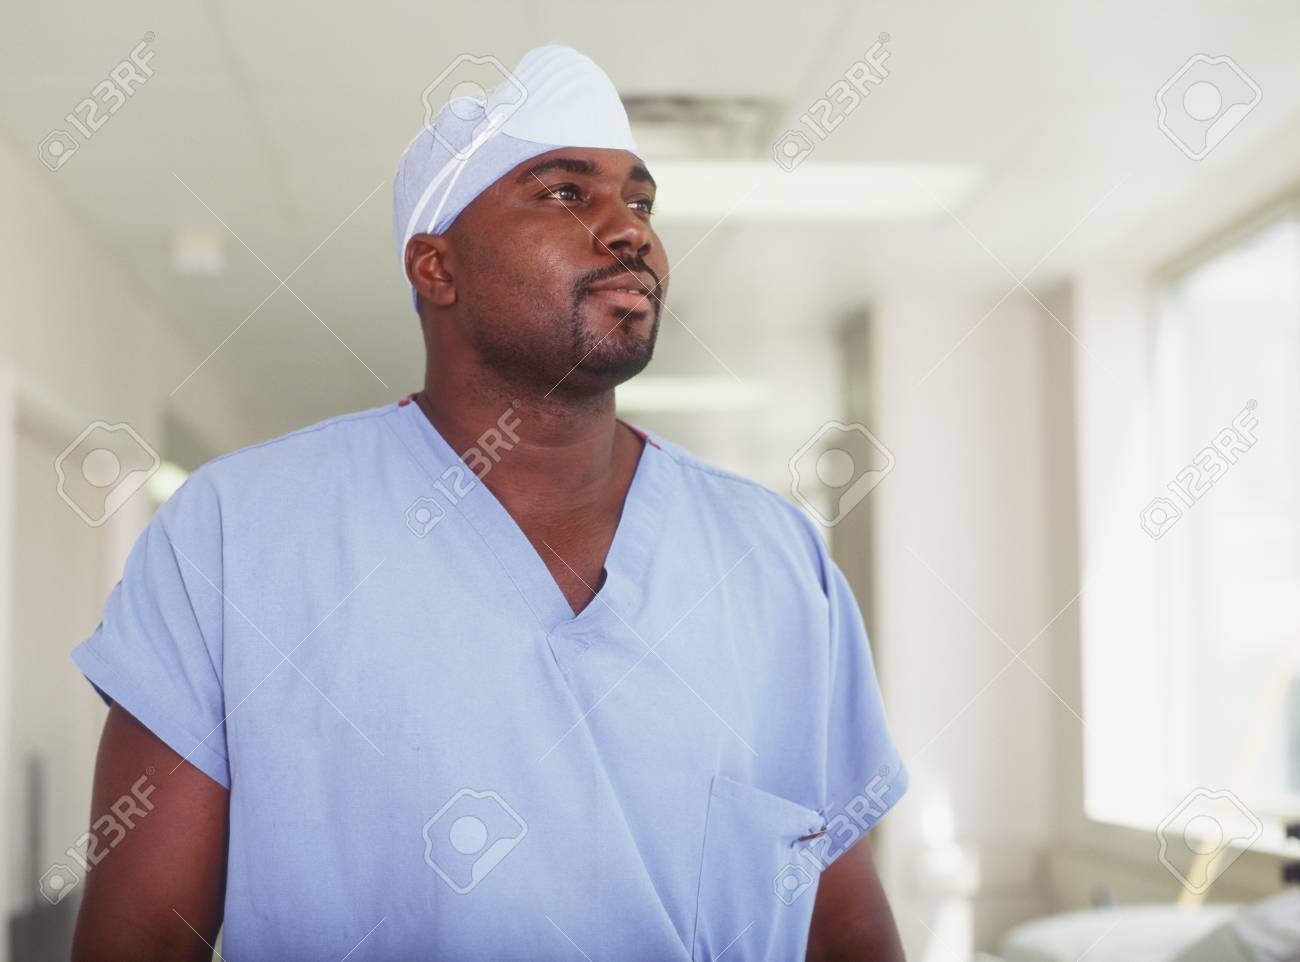 Male surgeon standing in a hospital corridor Stock Photo - 16044323